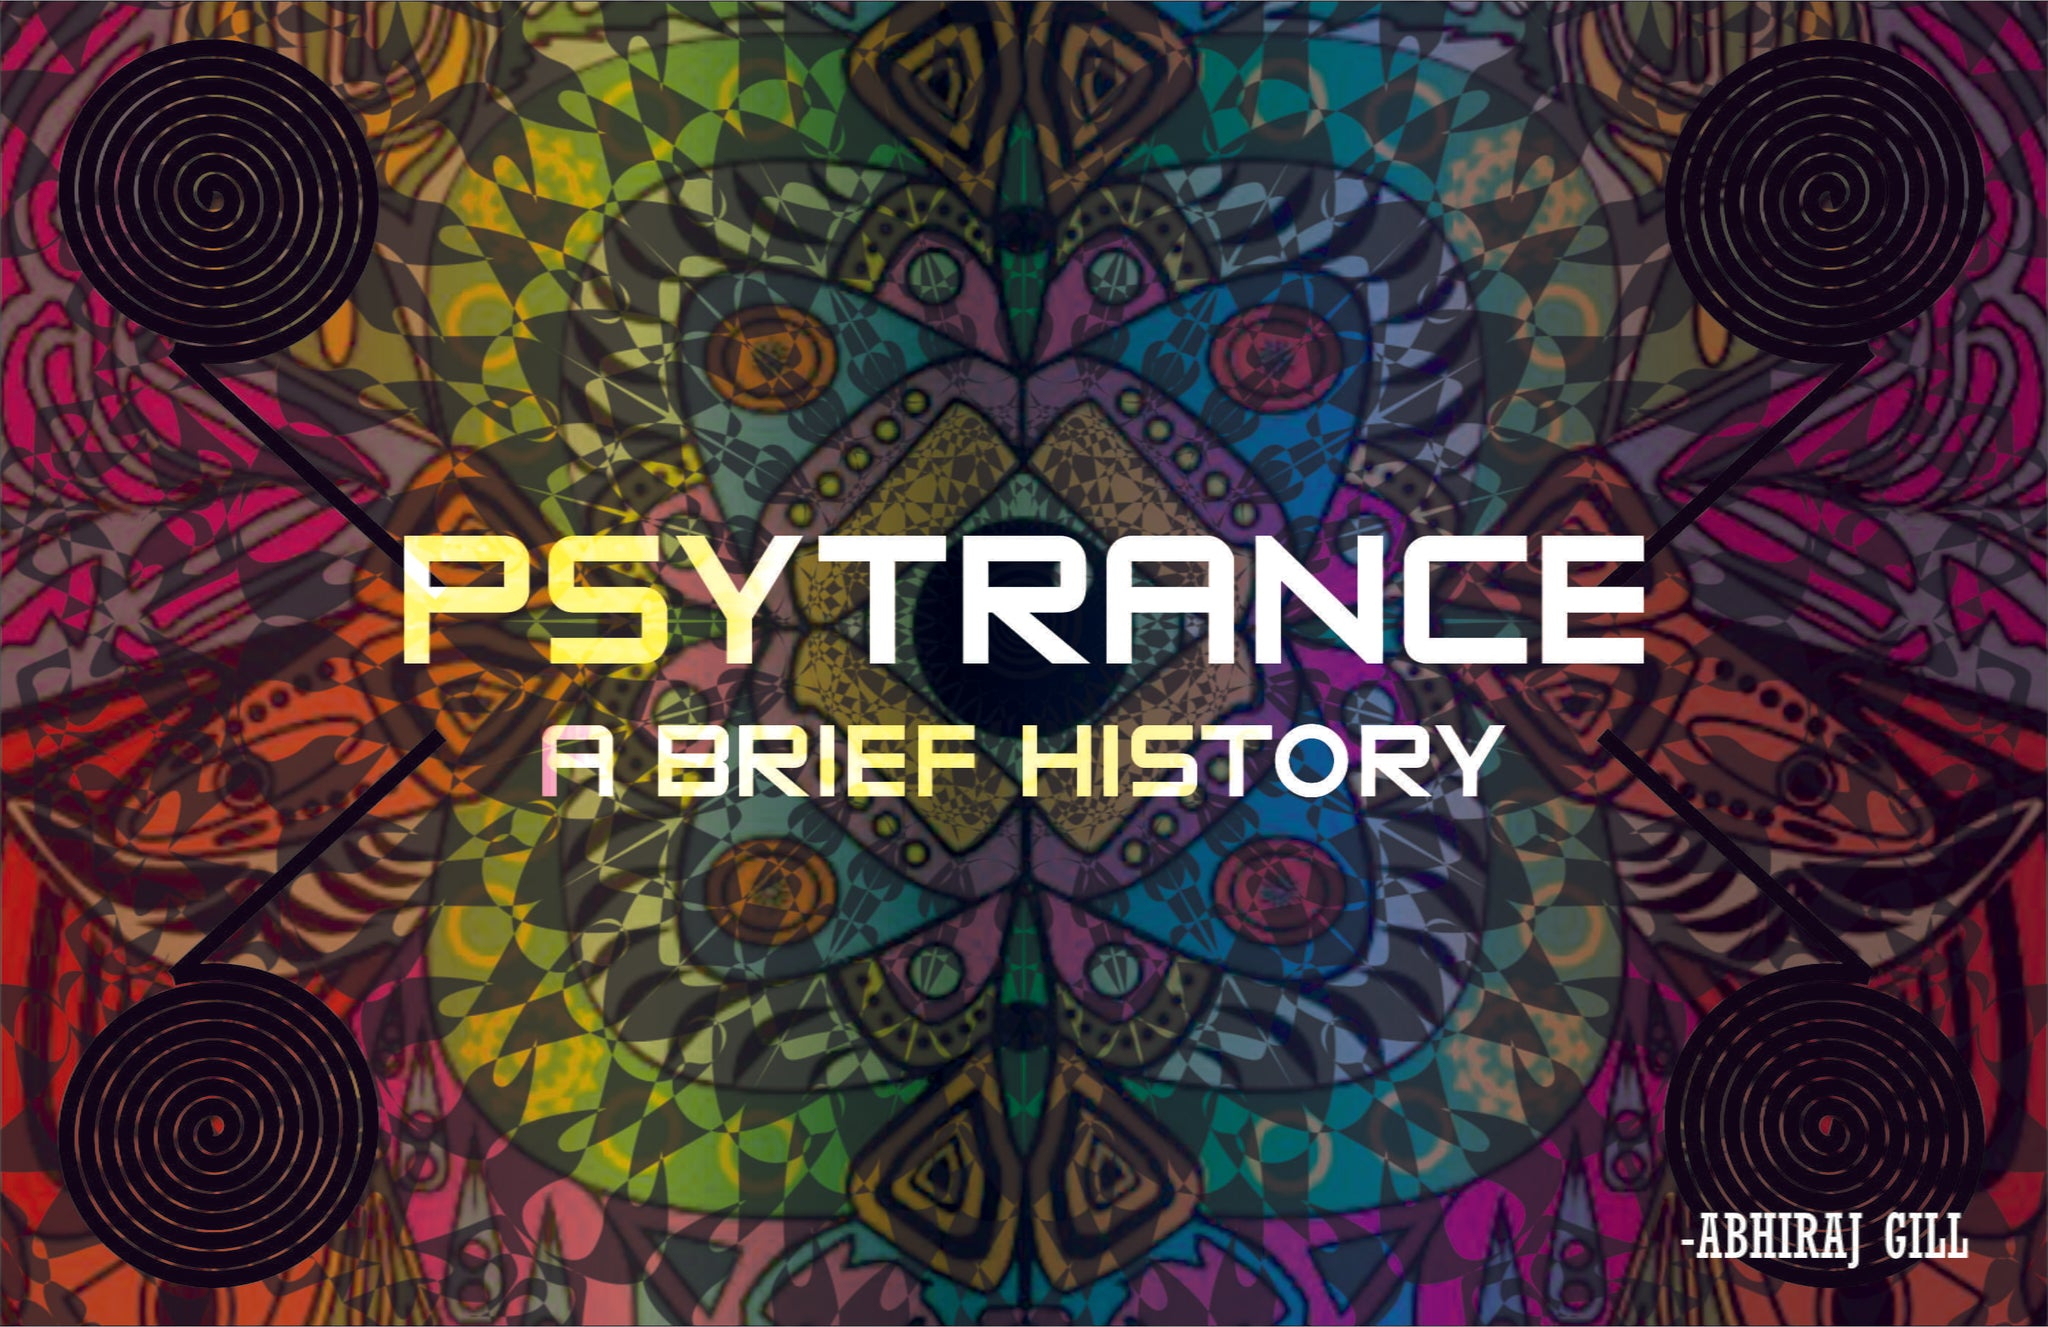 A Brief History and Indian Origin Of Goatrance, Now Known As Psytrance